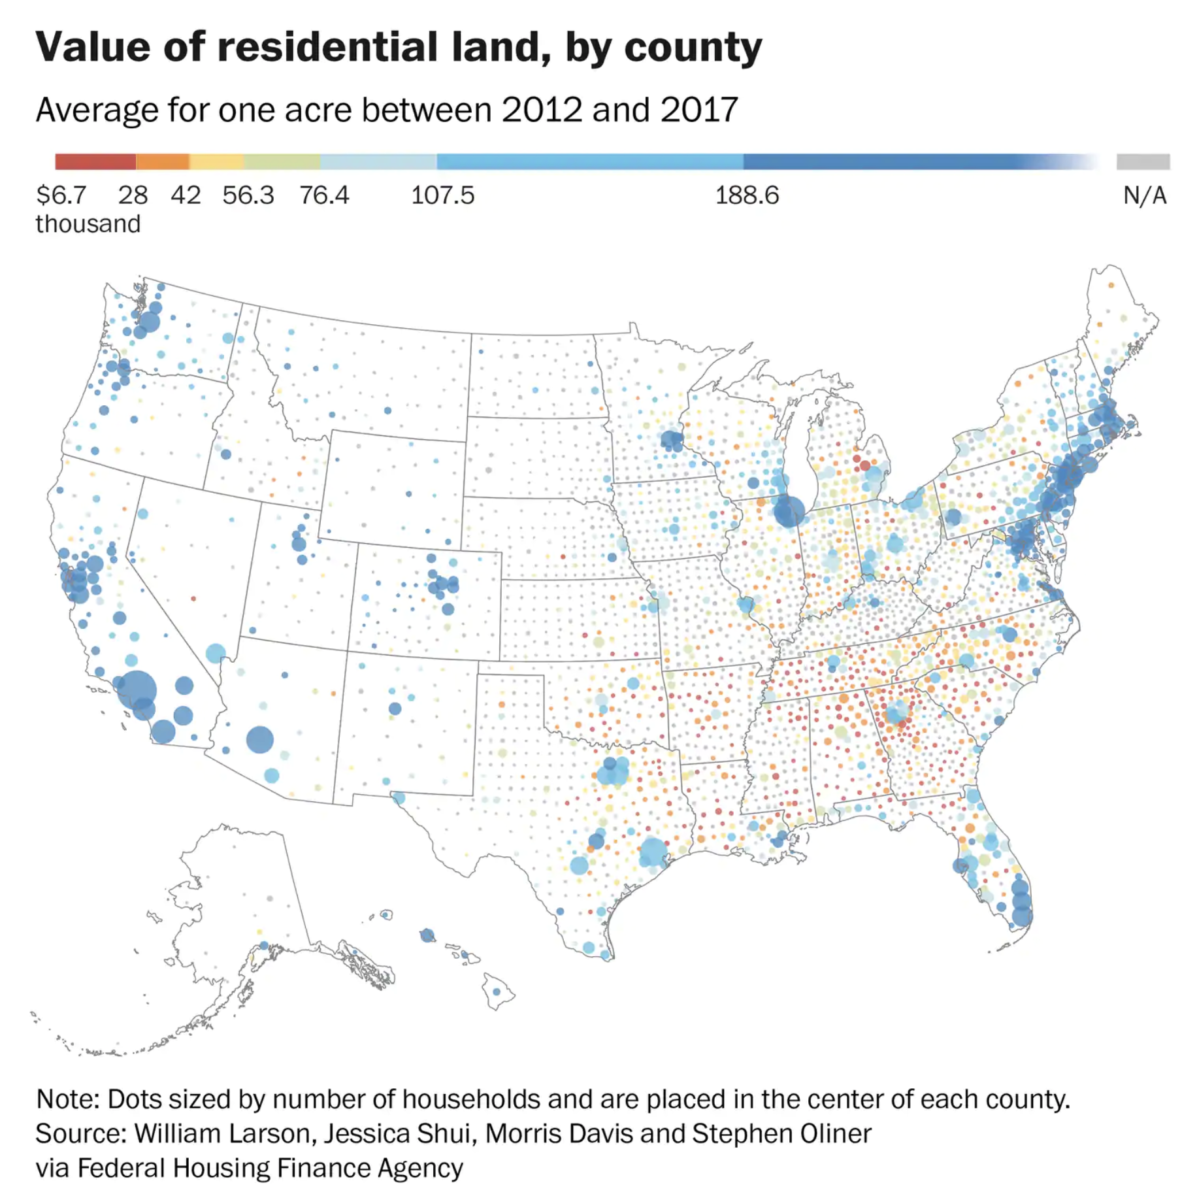 Value of U.S. Residential Land (by County) - The Big Picture